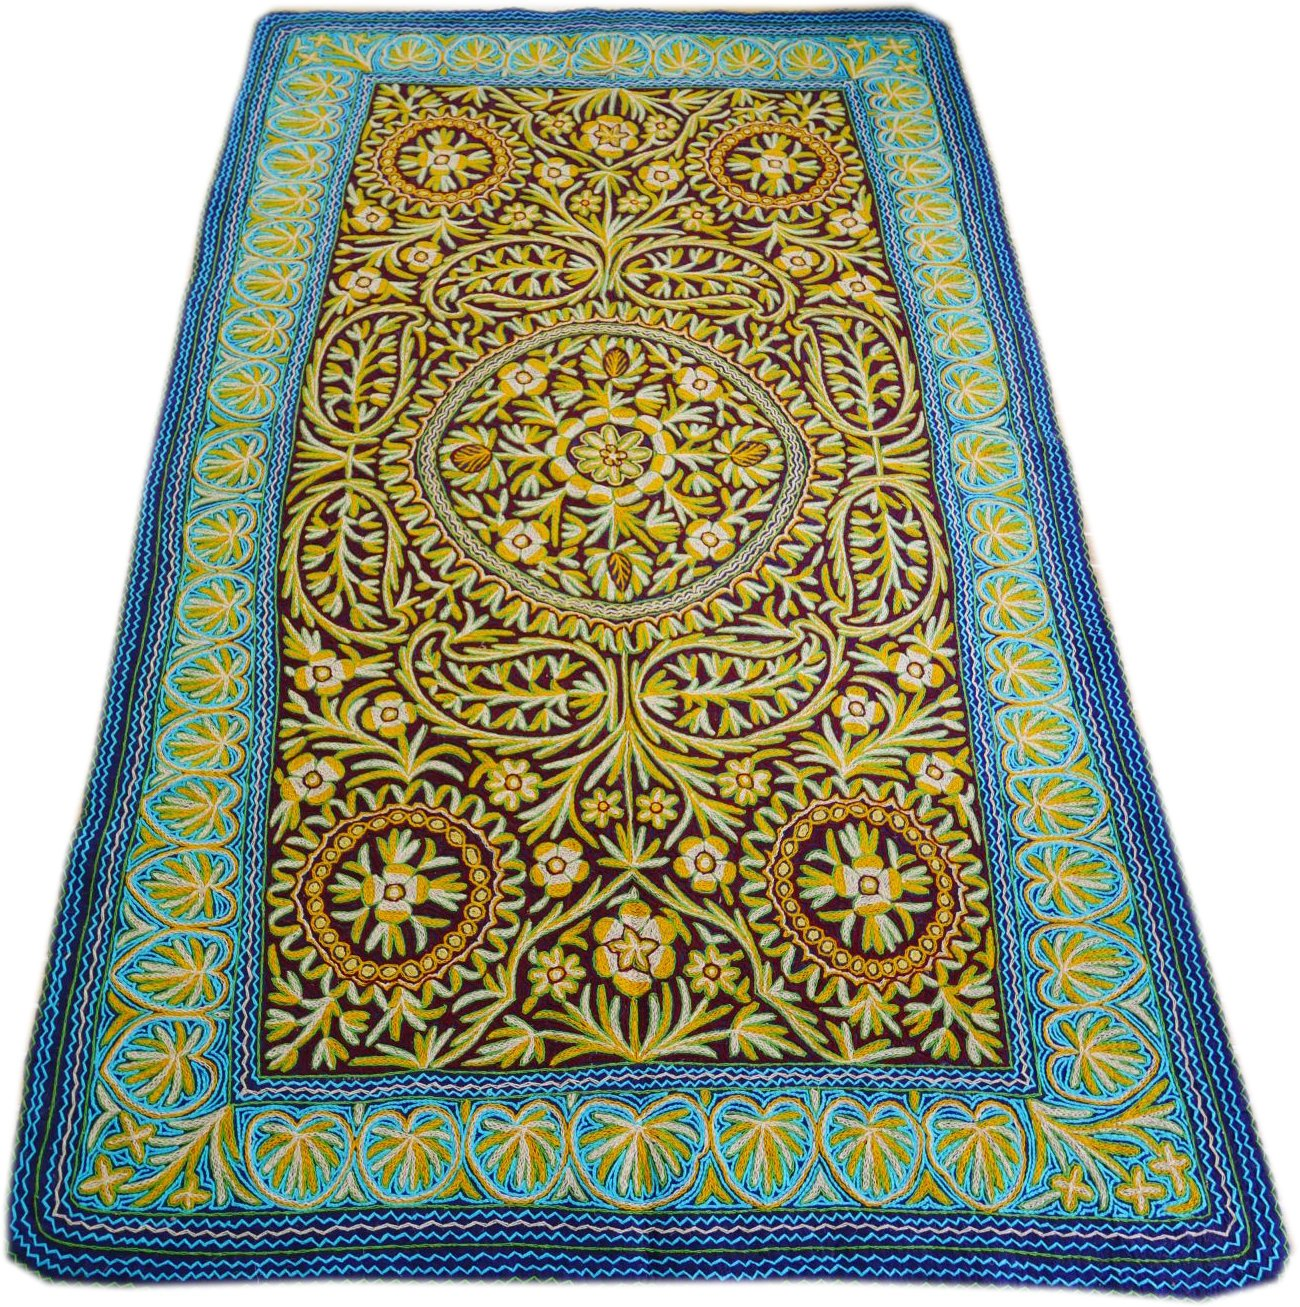 "Wool rug | boho area rug ""Jewel of Kashmir"" 10x6 traditional Namda a hand felted, embroidered, wool rug from the Himalayas"